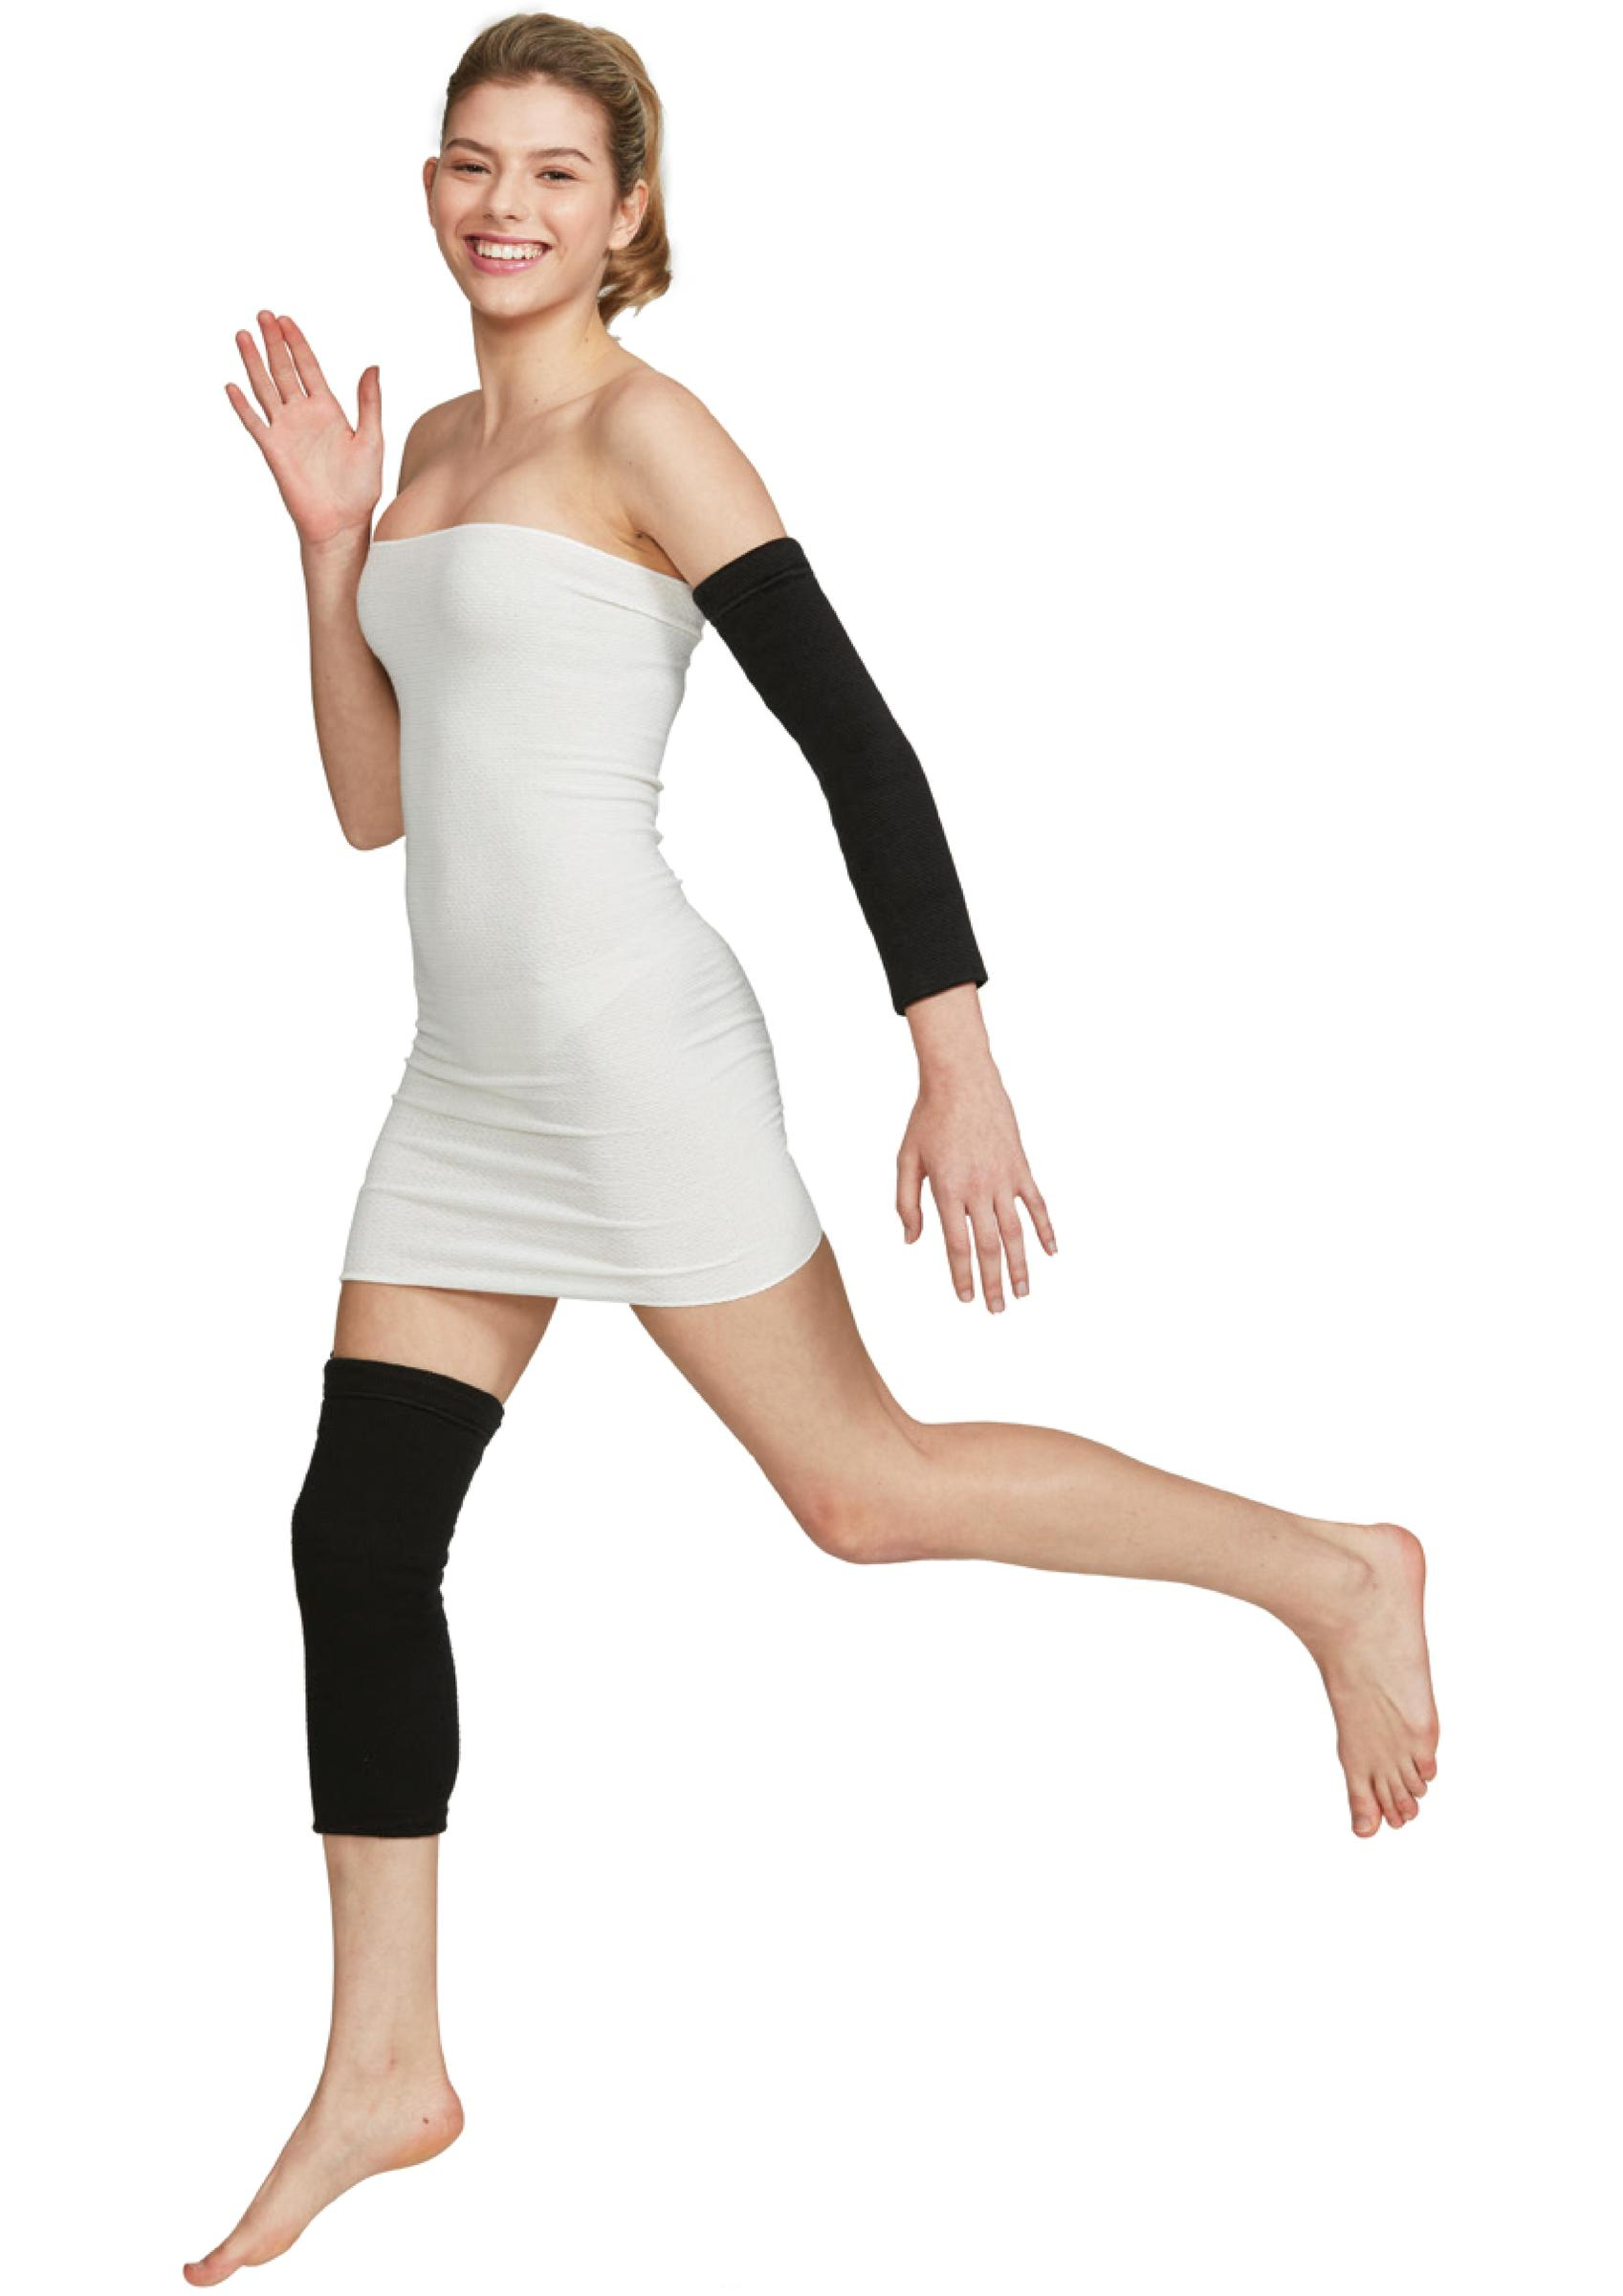 SG001_Dual_Purpose_Support_(Elbow.Knee).jpg